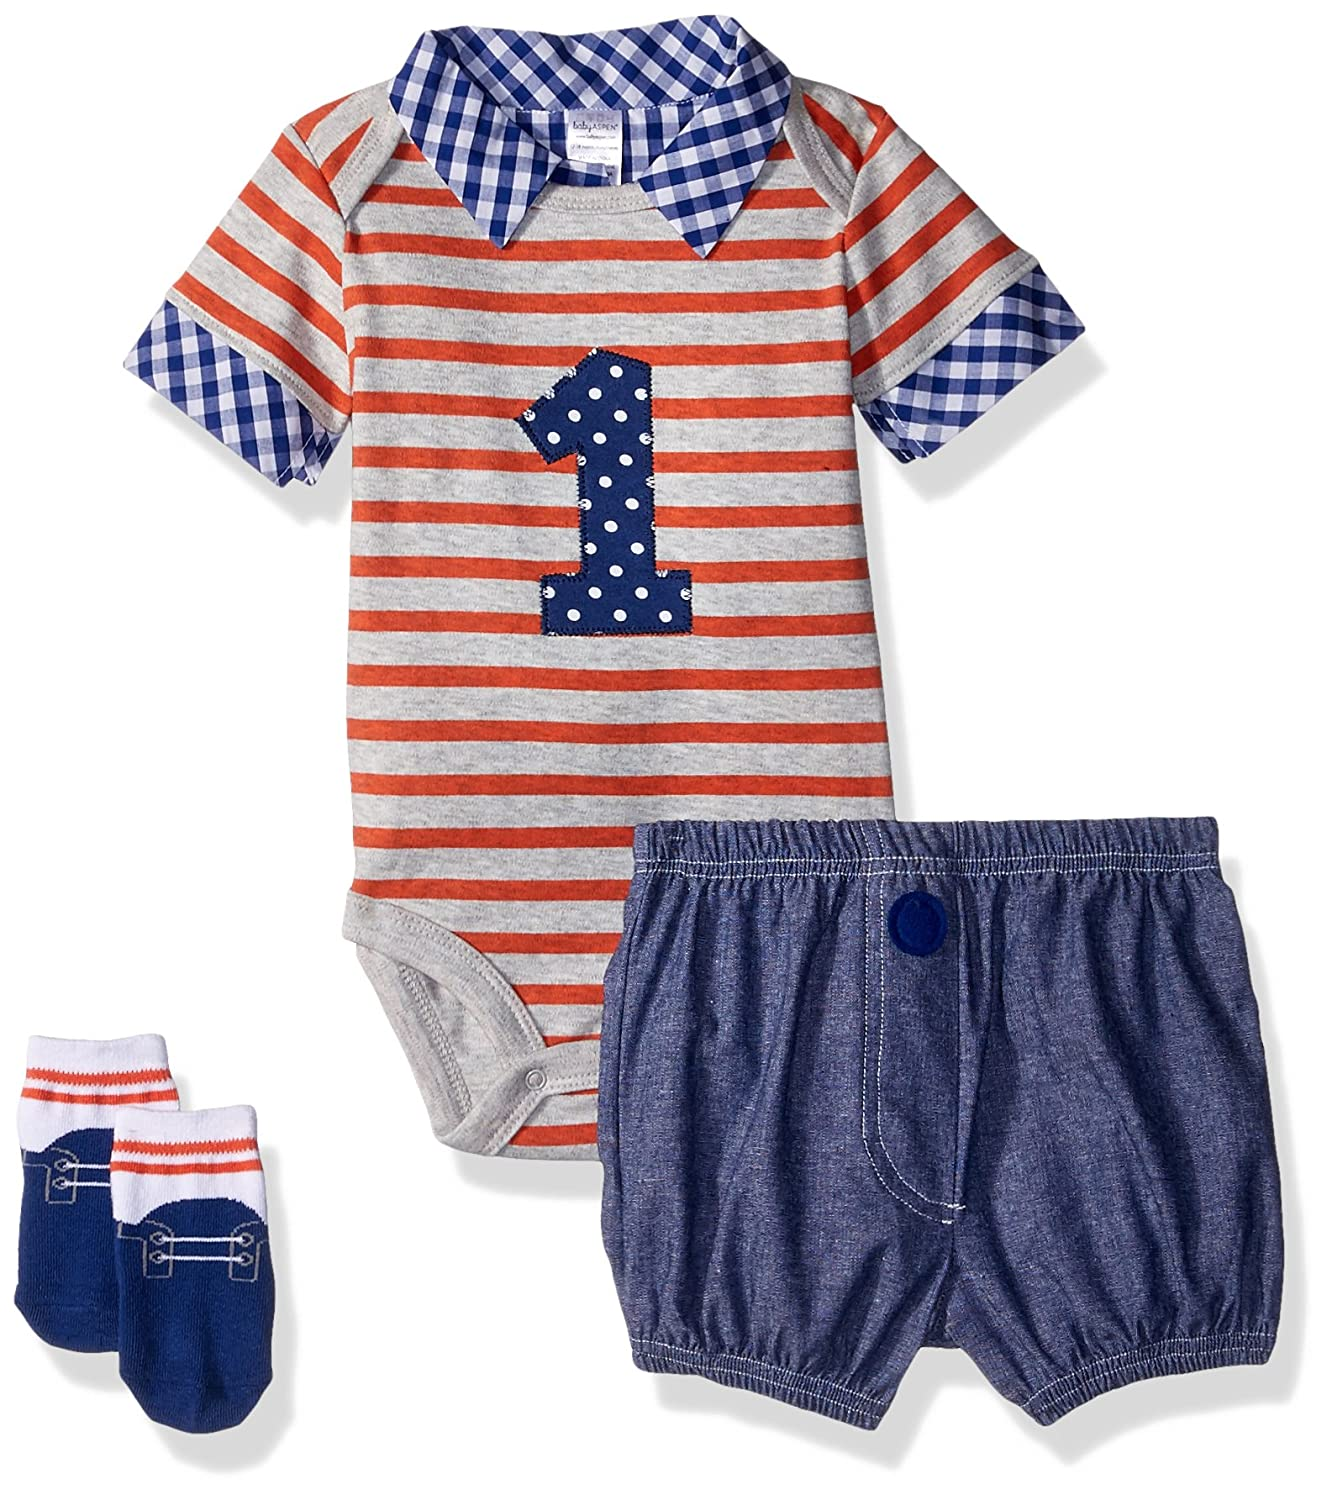 Amazon.com : Baby Aspen My First Birthday 3-Piece Dapper Dude Outfit, Onesie with Shorts, Baby Socks, 12-18 Months : Baby